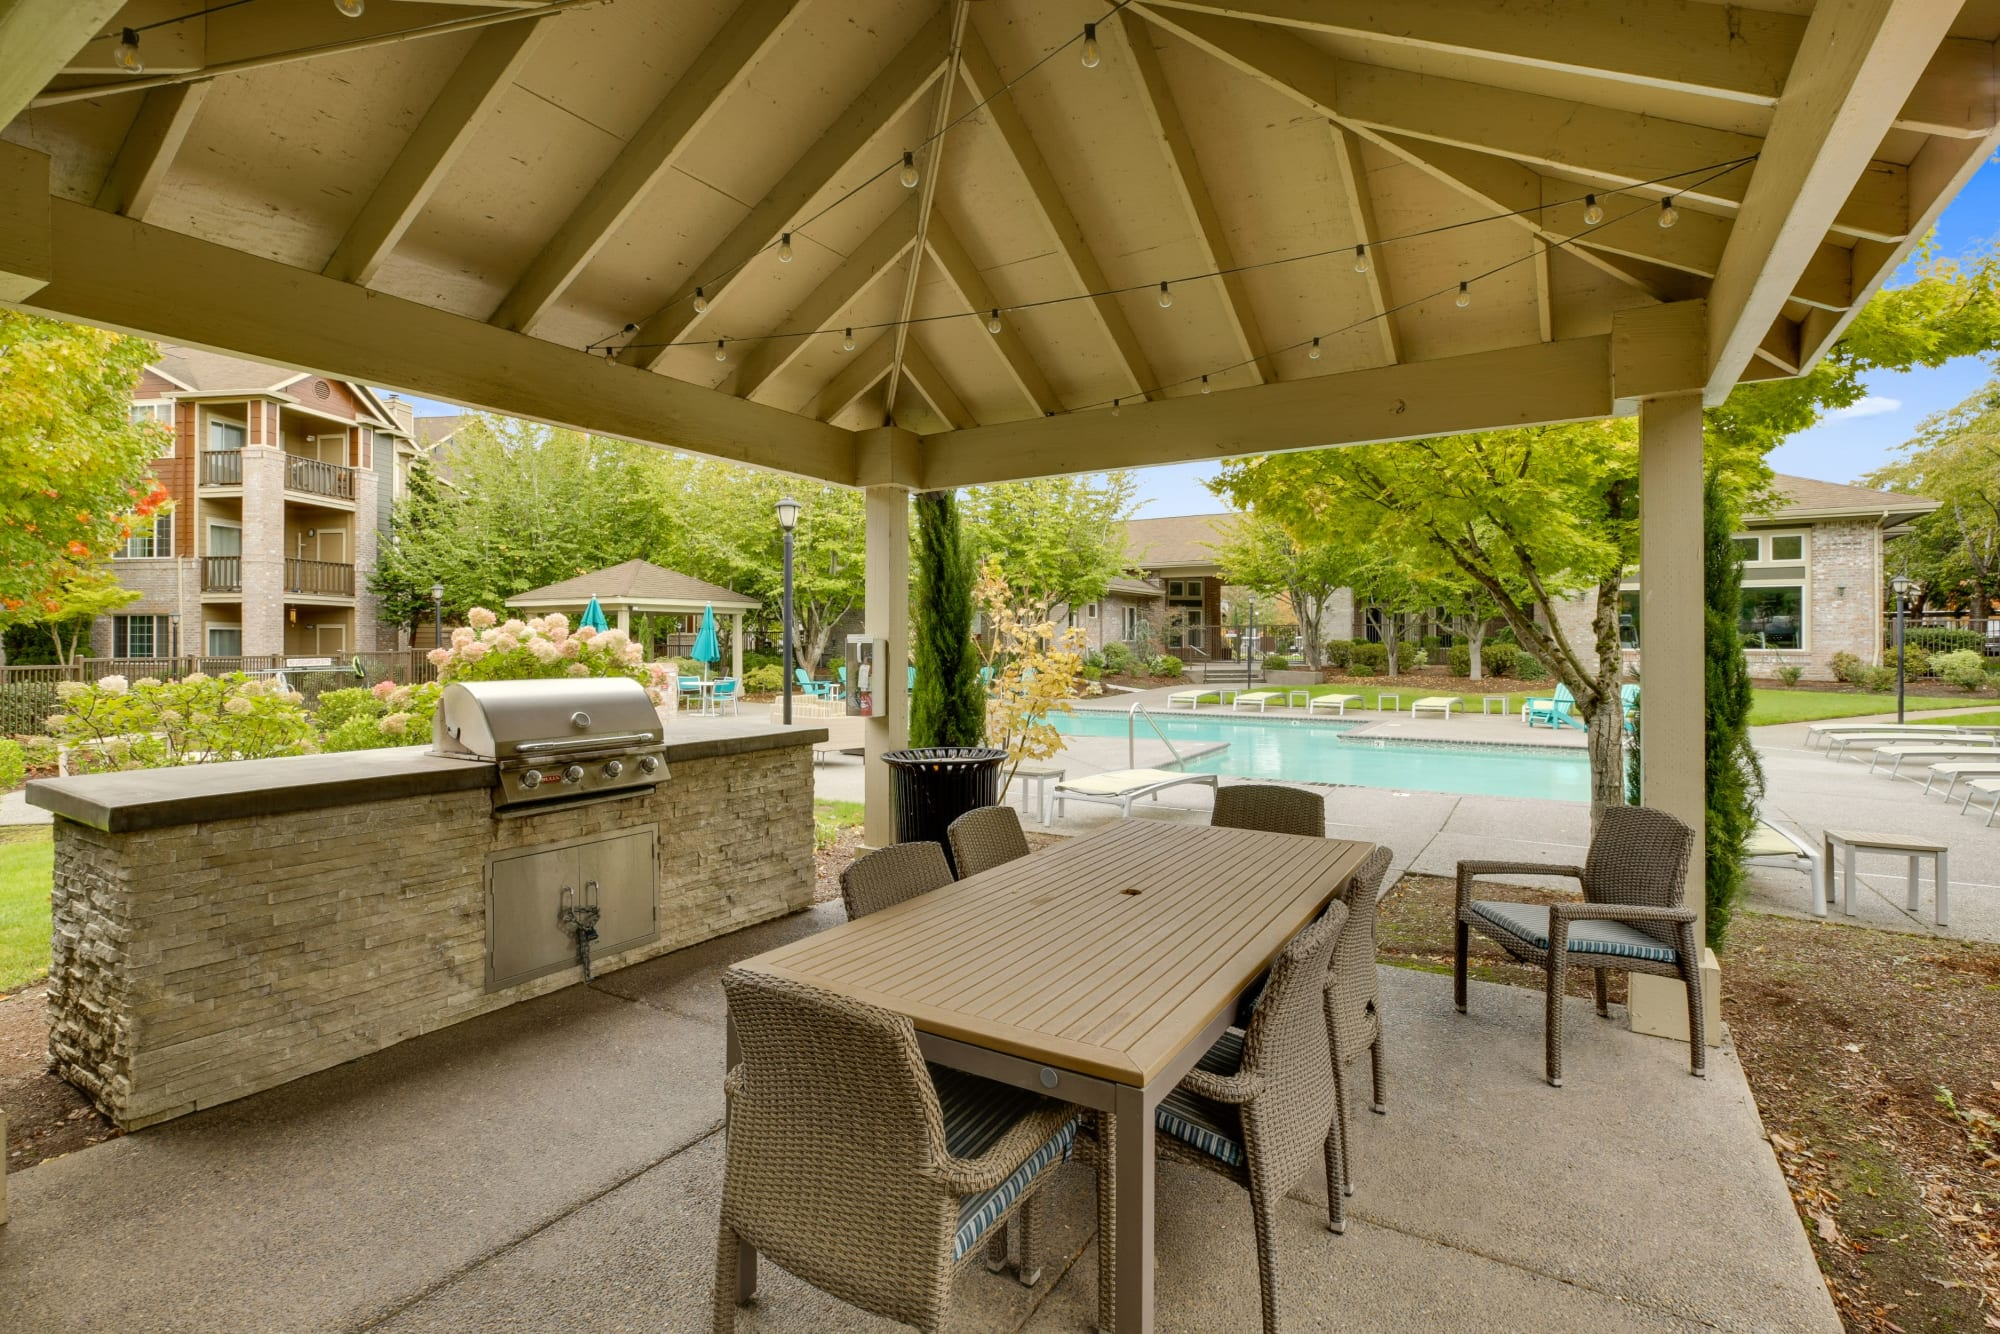 A covered patio area by the pool with a large wooden table and rope lights on the ceiling at The Grove at Orenco Station in Hillsboro, Oregon